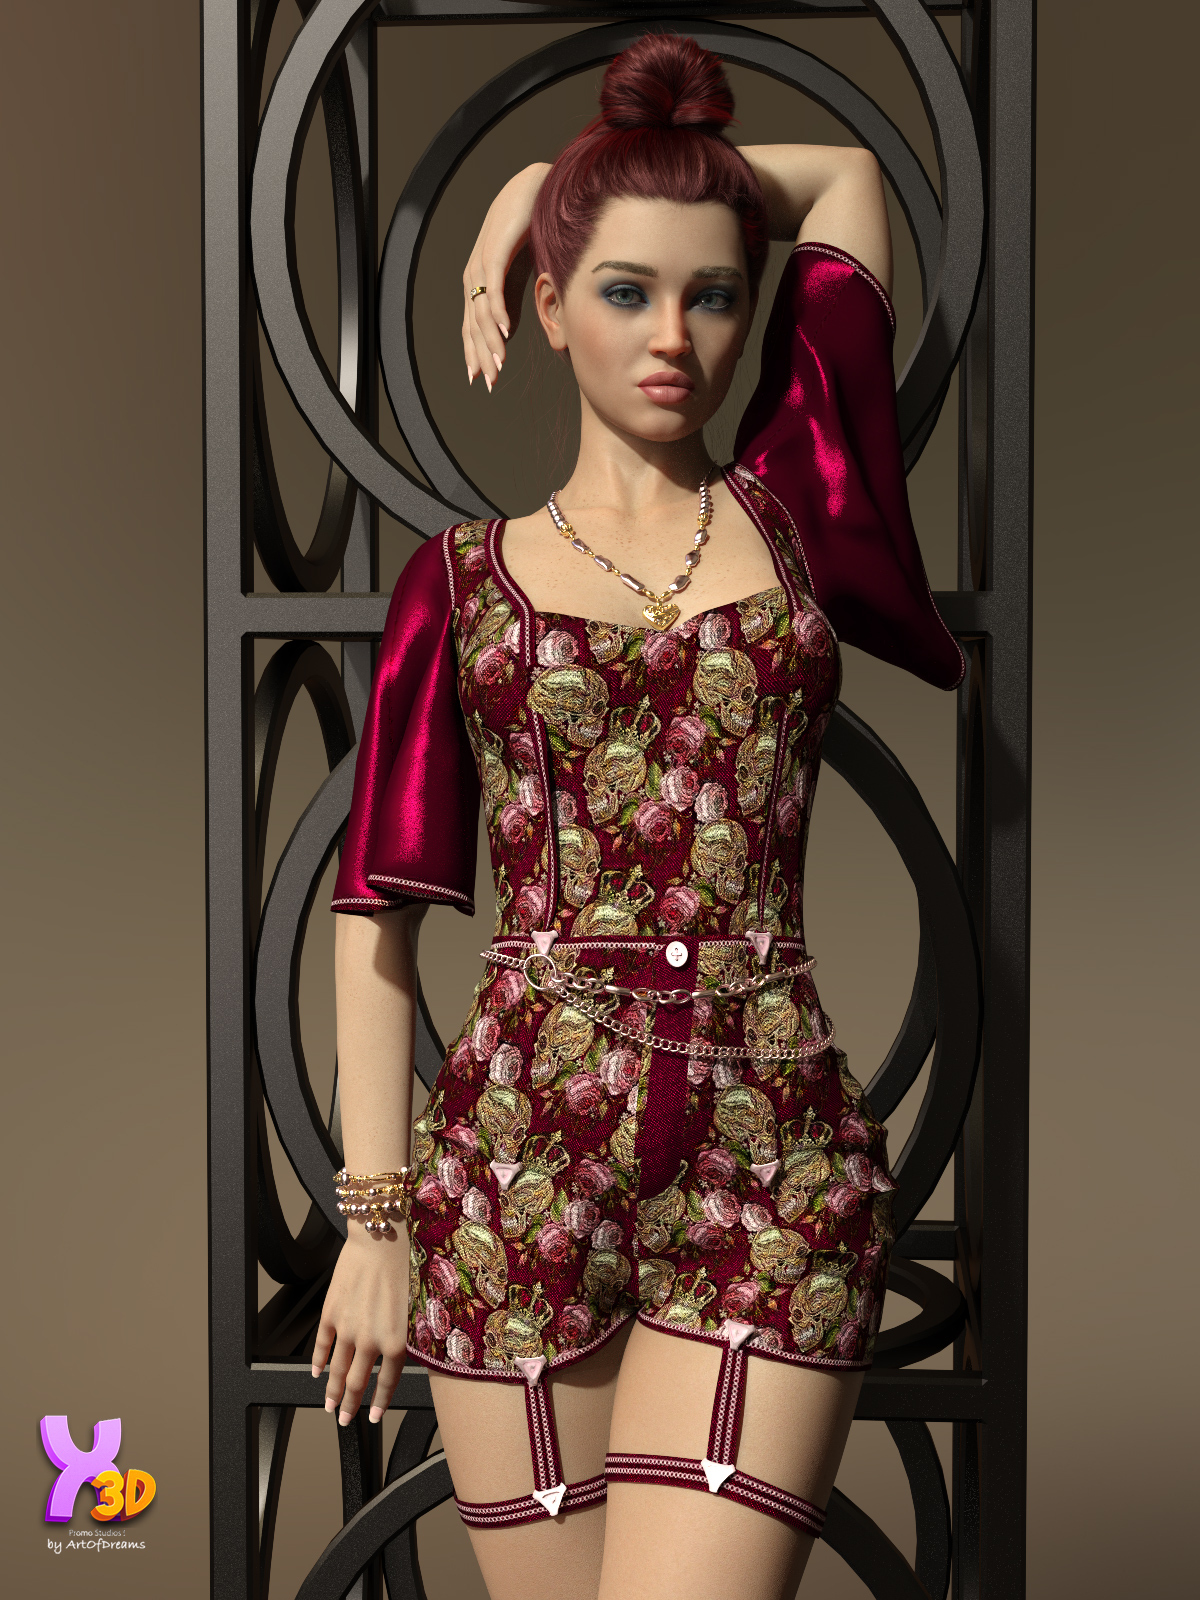 Charm Miya Short Overalls and EX by Crender by ArtOfDreams